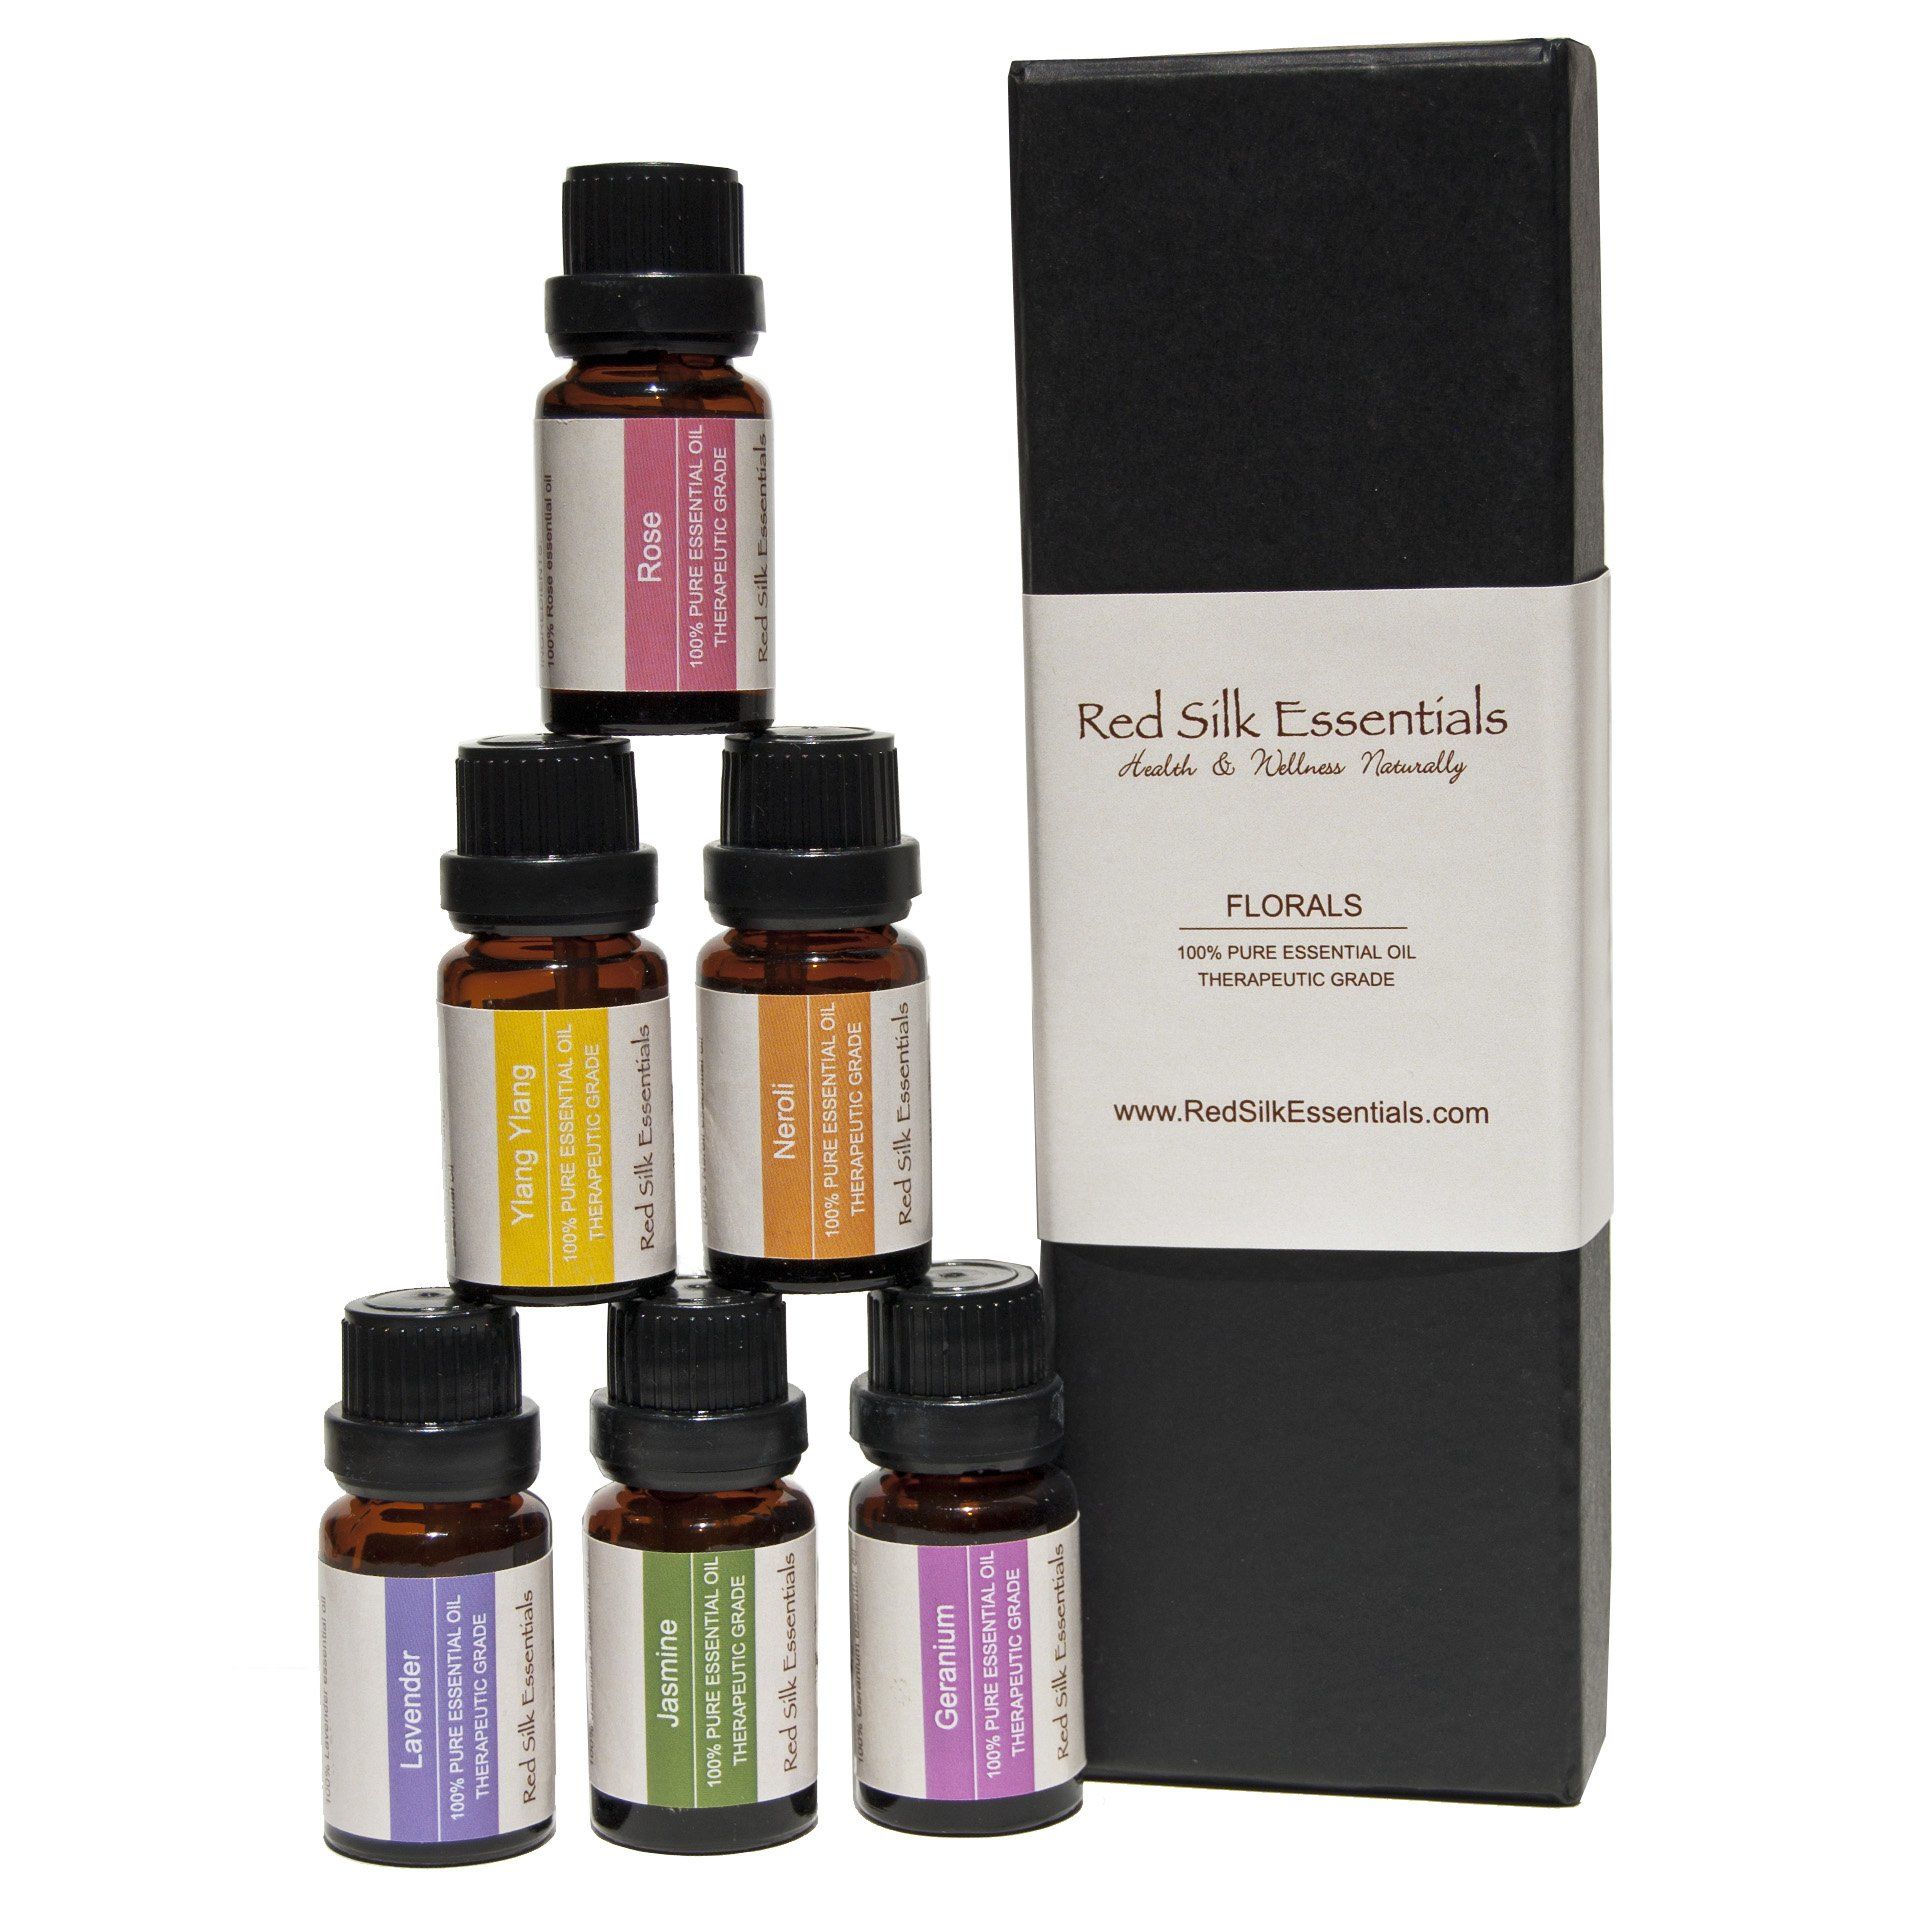 100% Pure Undiluted Essential Oils Set - Top 6 Florals